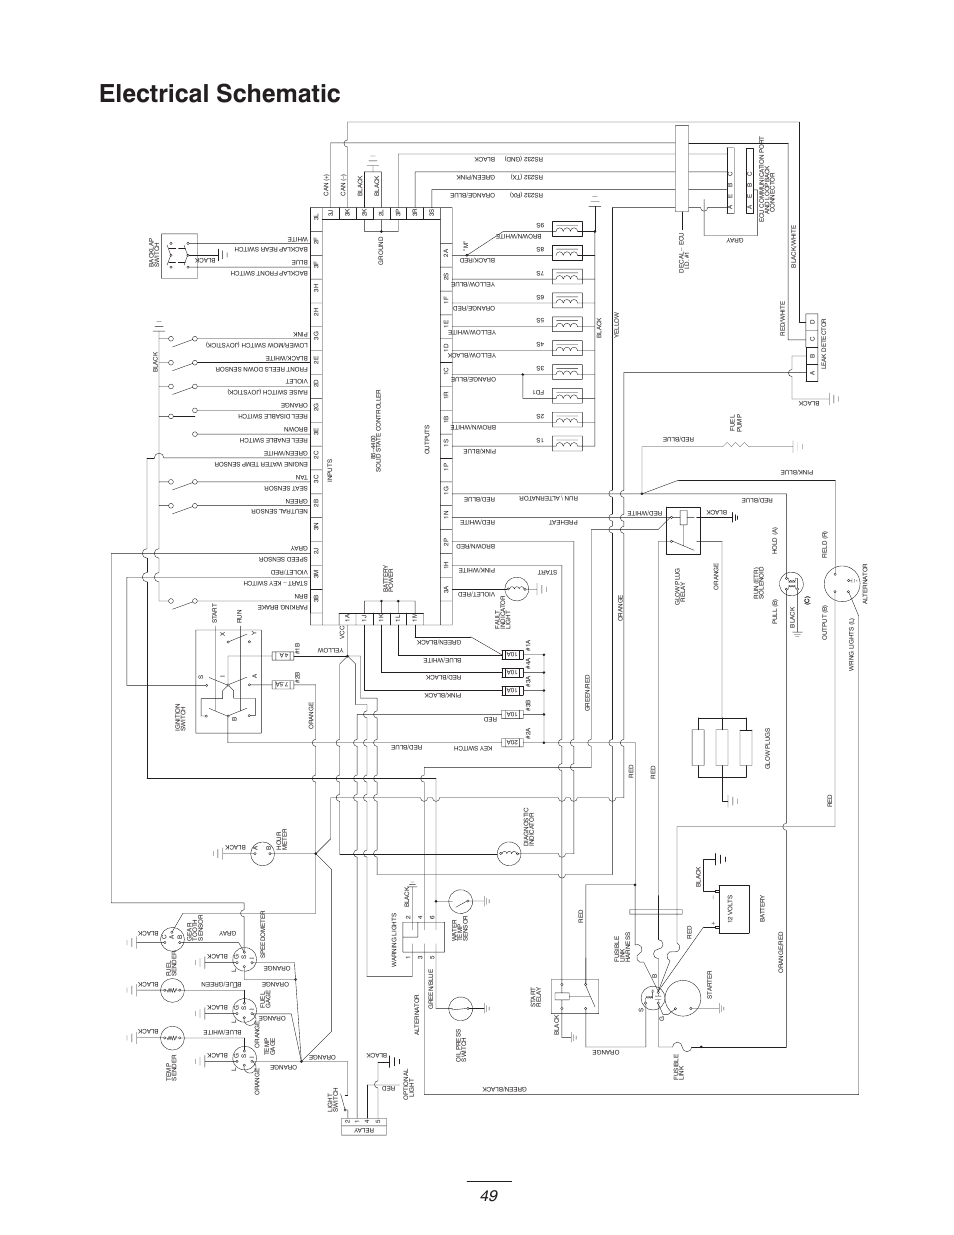 medium resolution of electrical schematic toro 5400 d user manual page 49 52